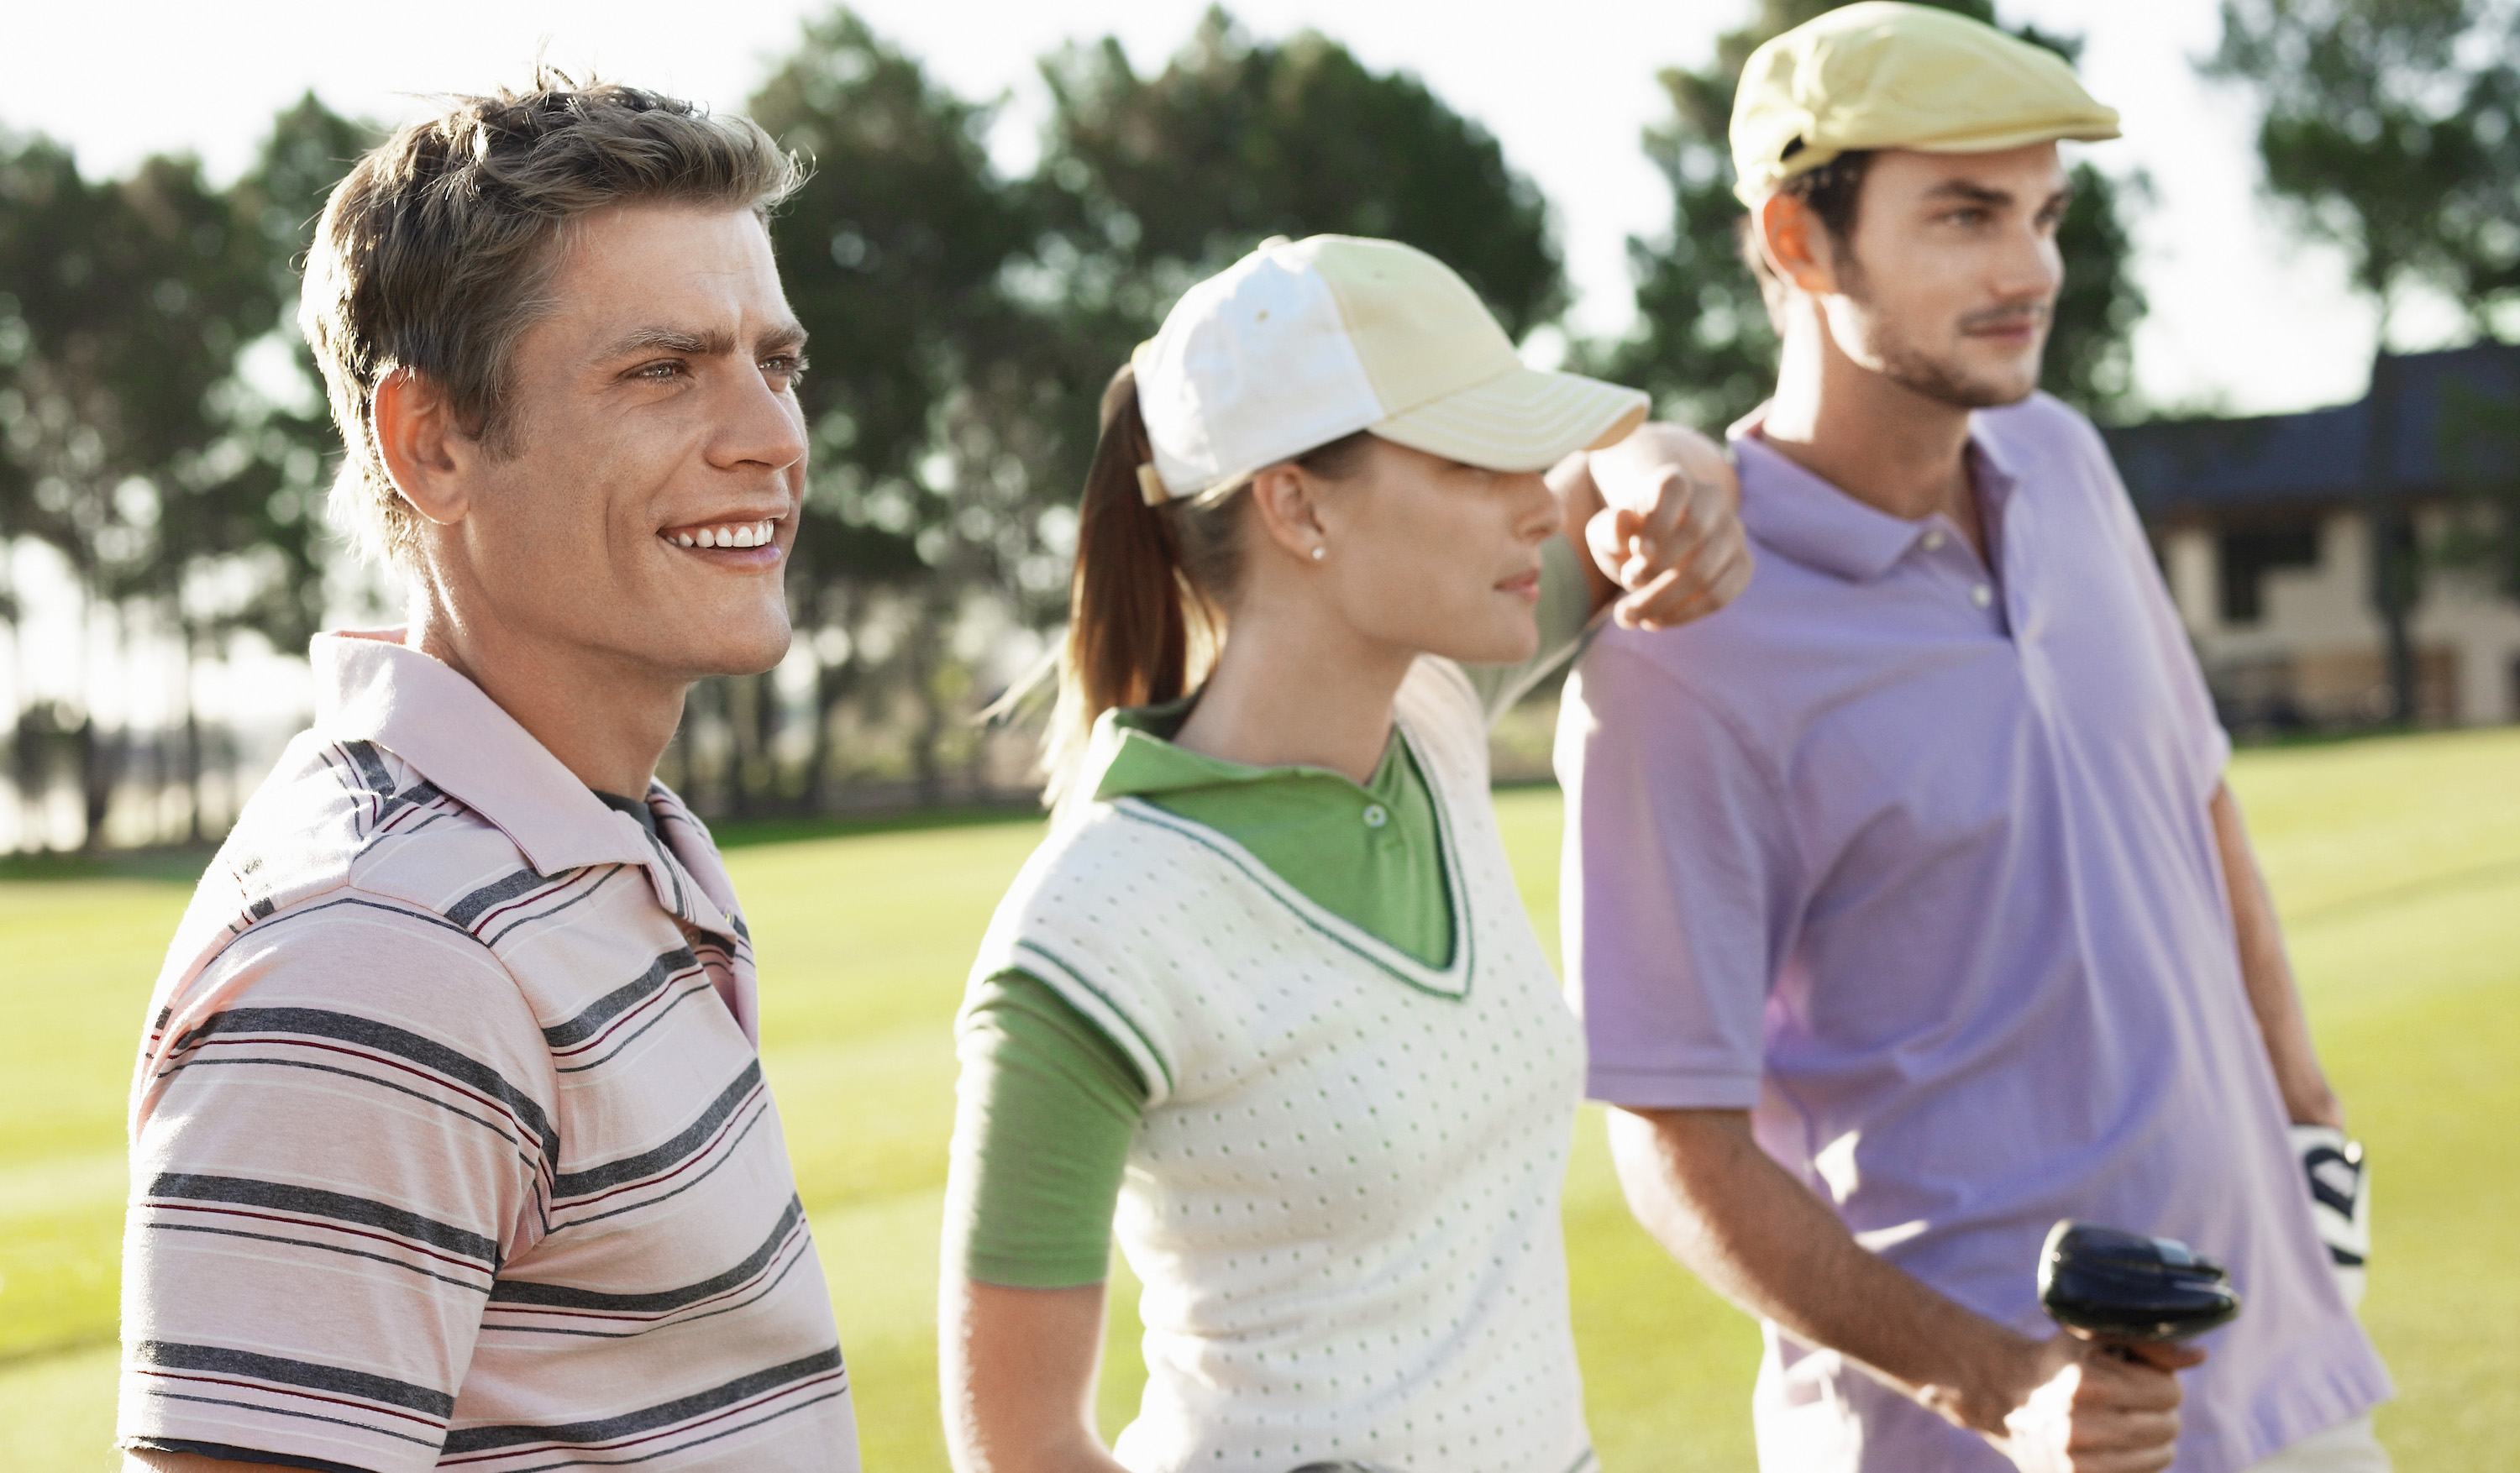 What Can Golf Courses Do To Attract More Young People?